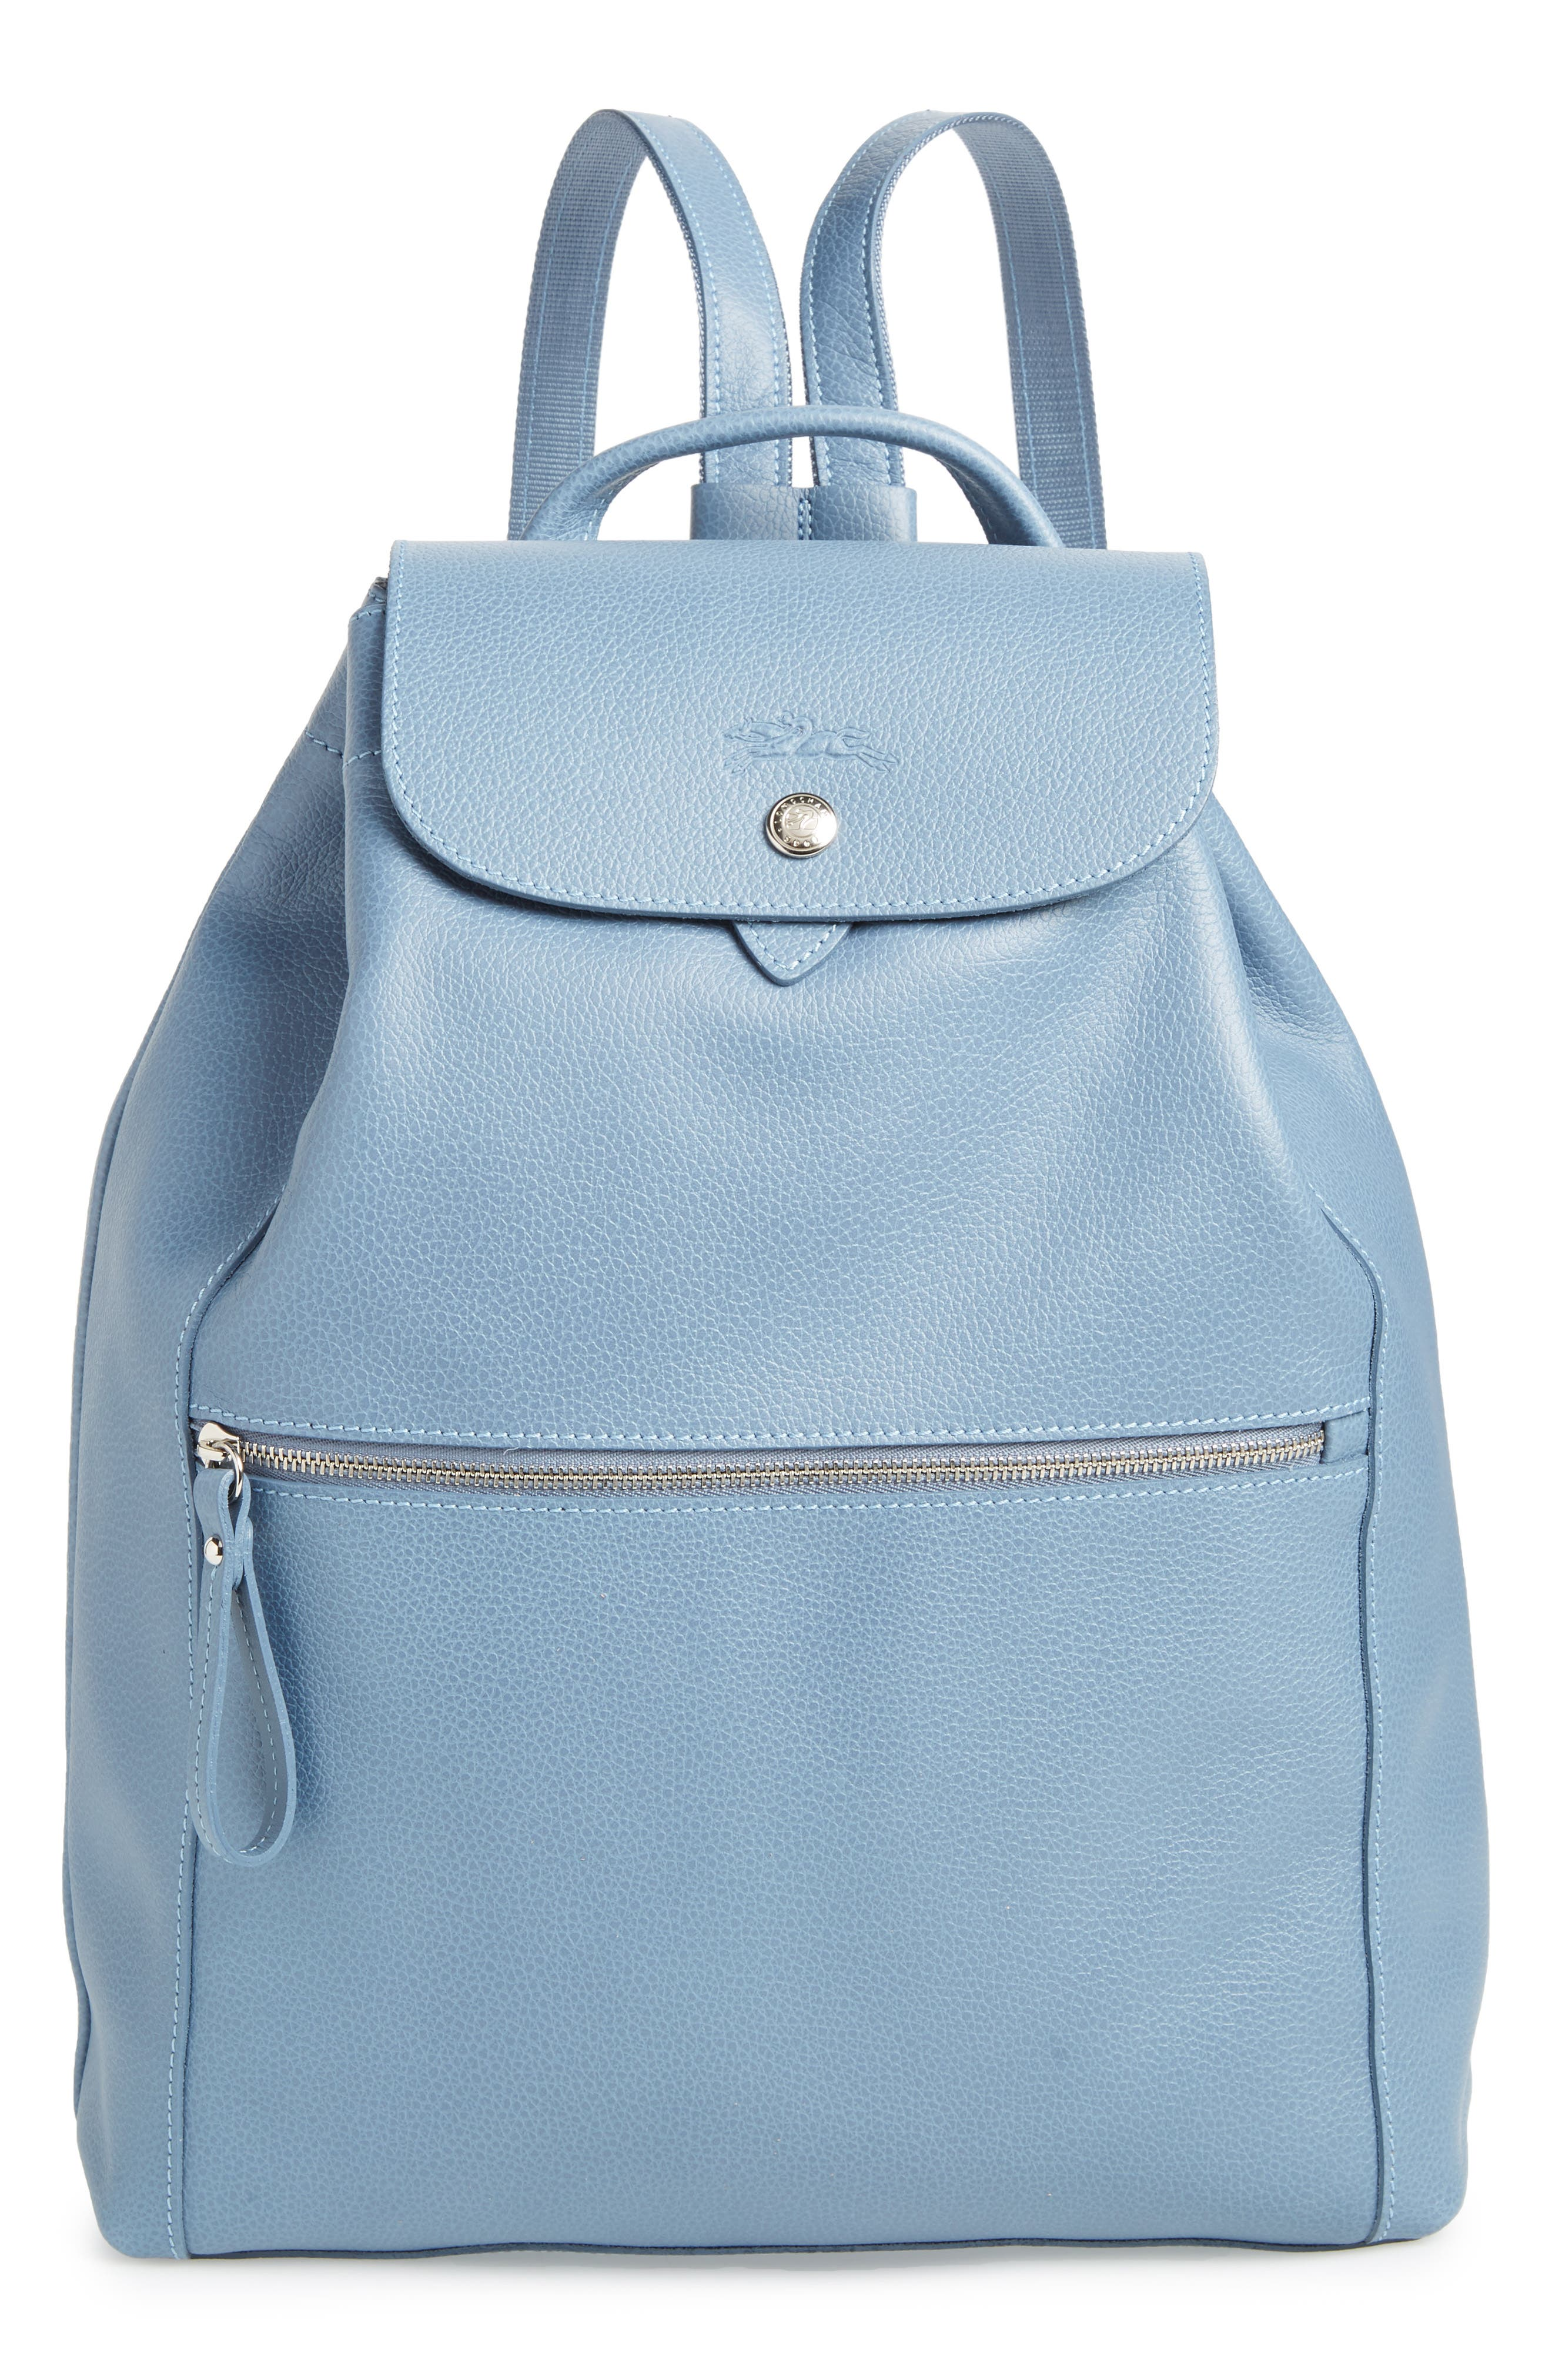 LEATHER BACKPACK - BLUE